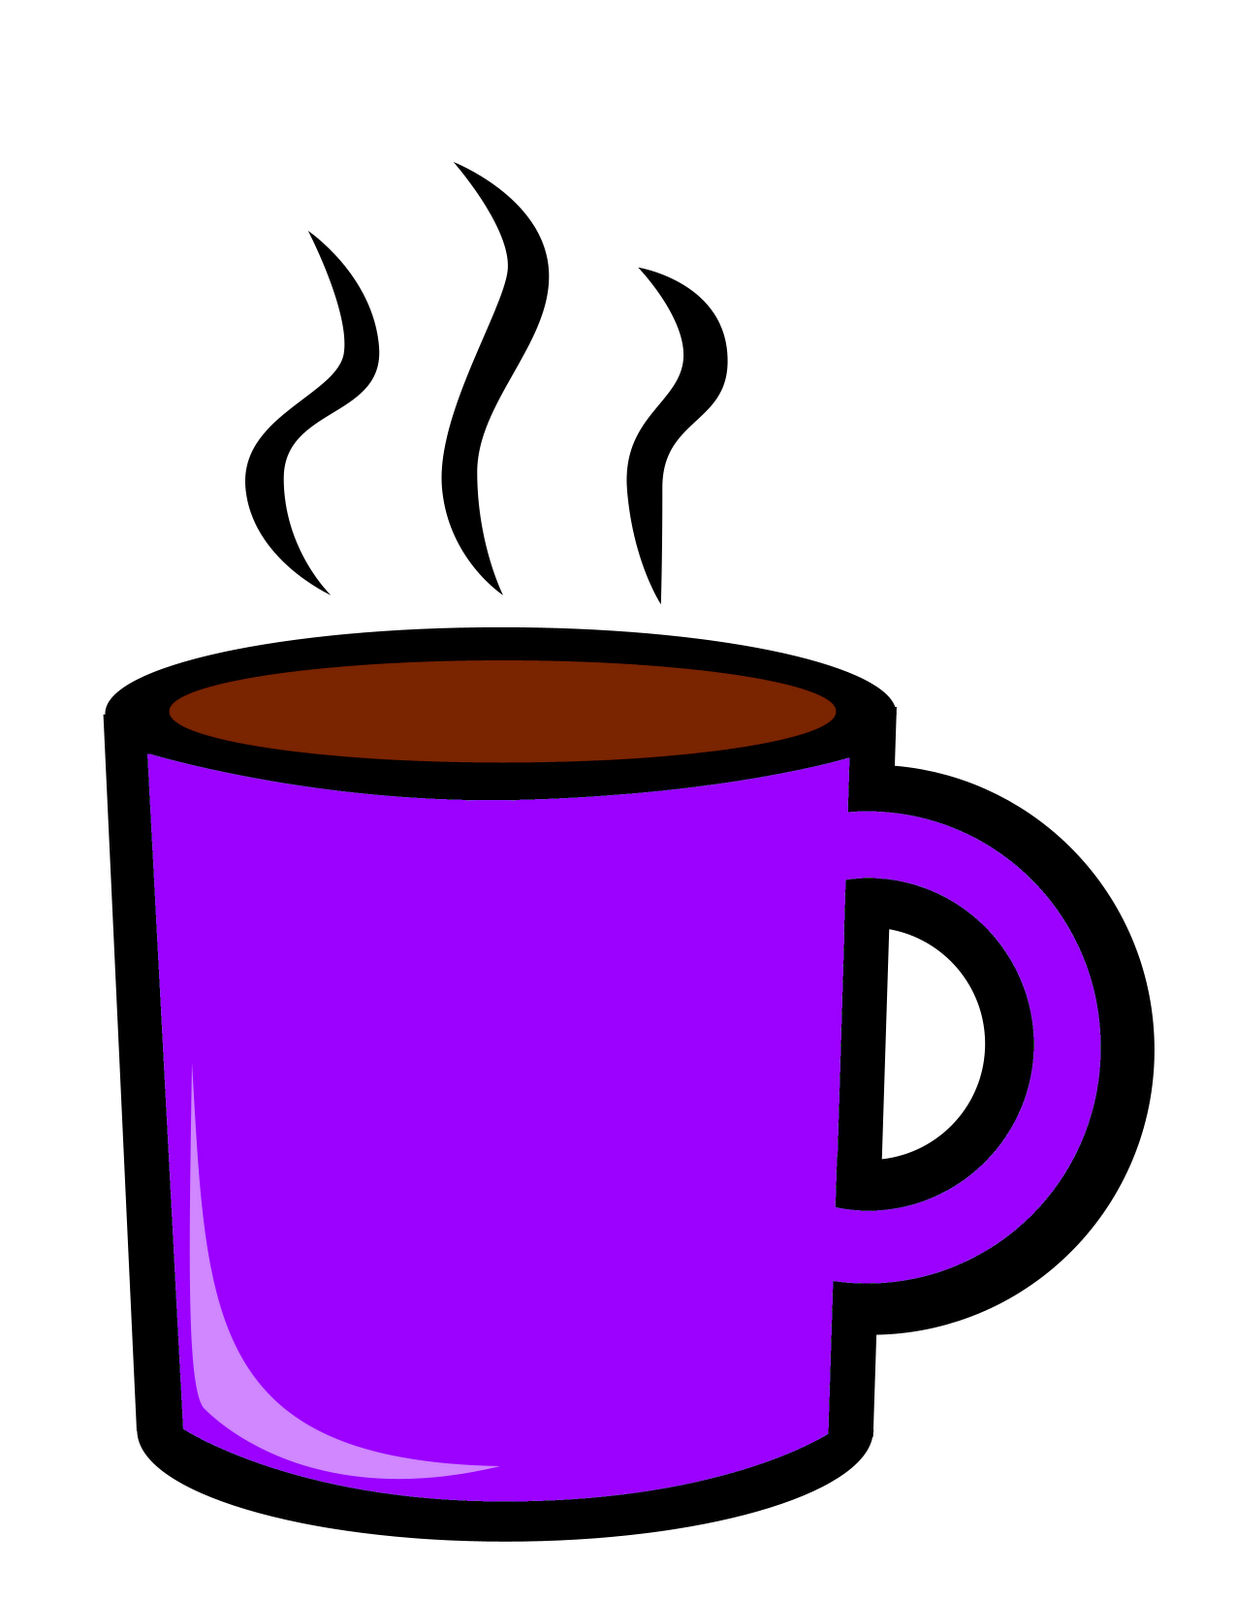 Clipart at getdrawings com. Coffee clip hot chocolate clipart free